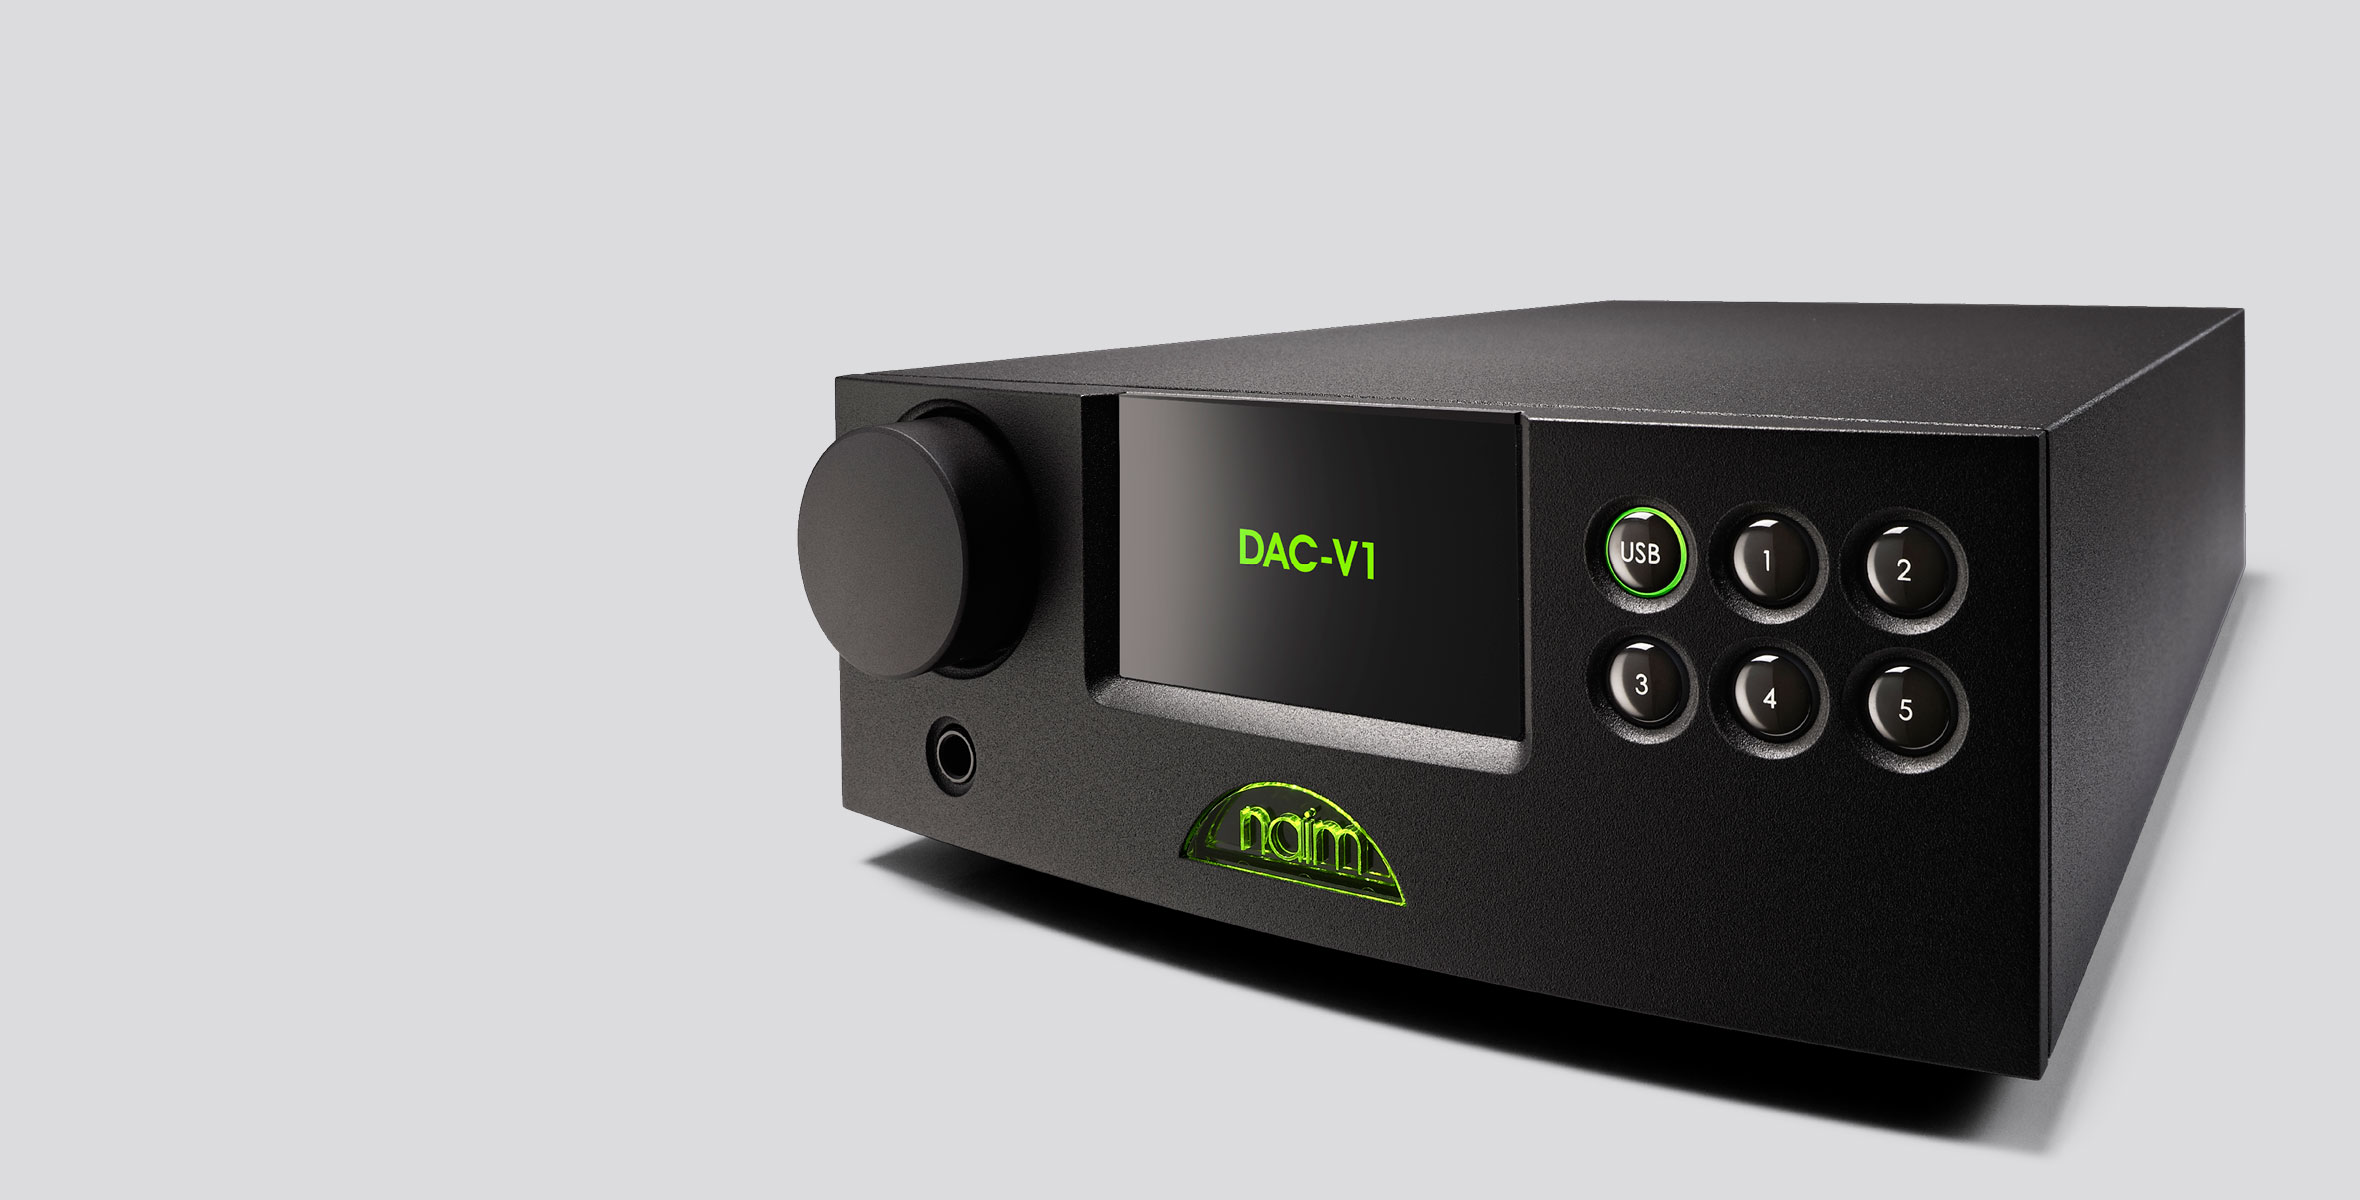 DAC-V1 Digital To Analogue Converter